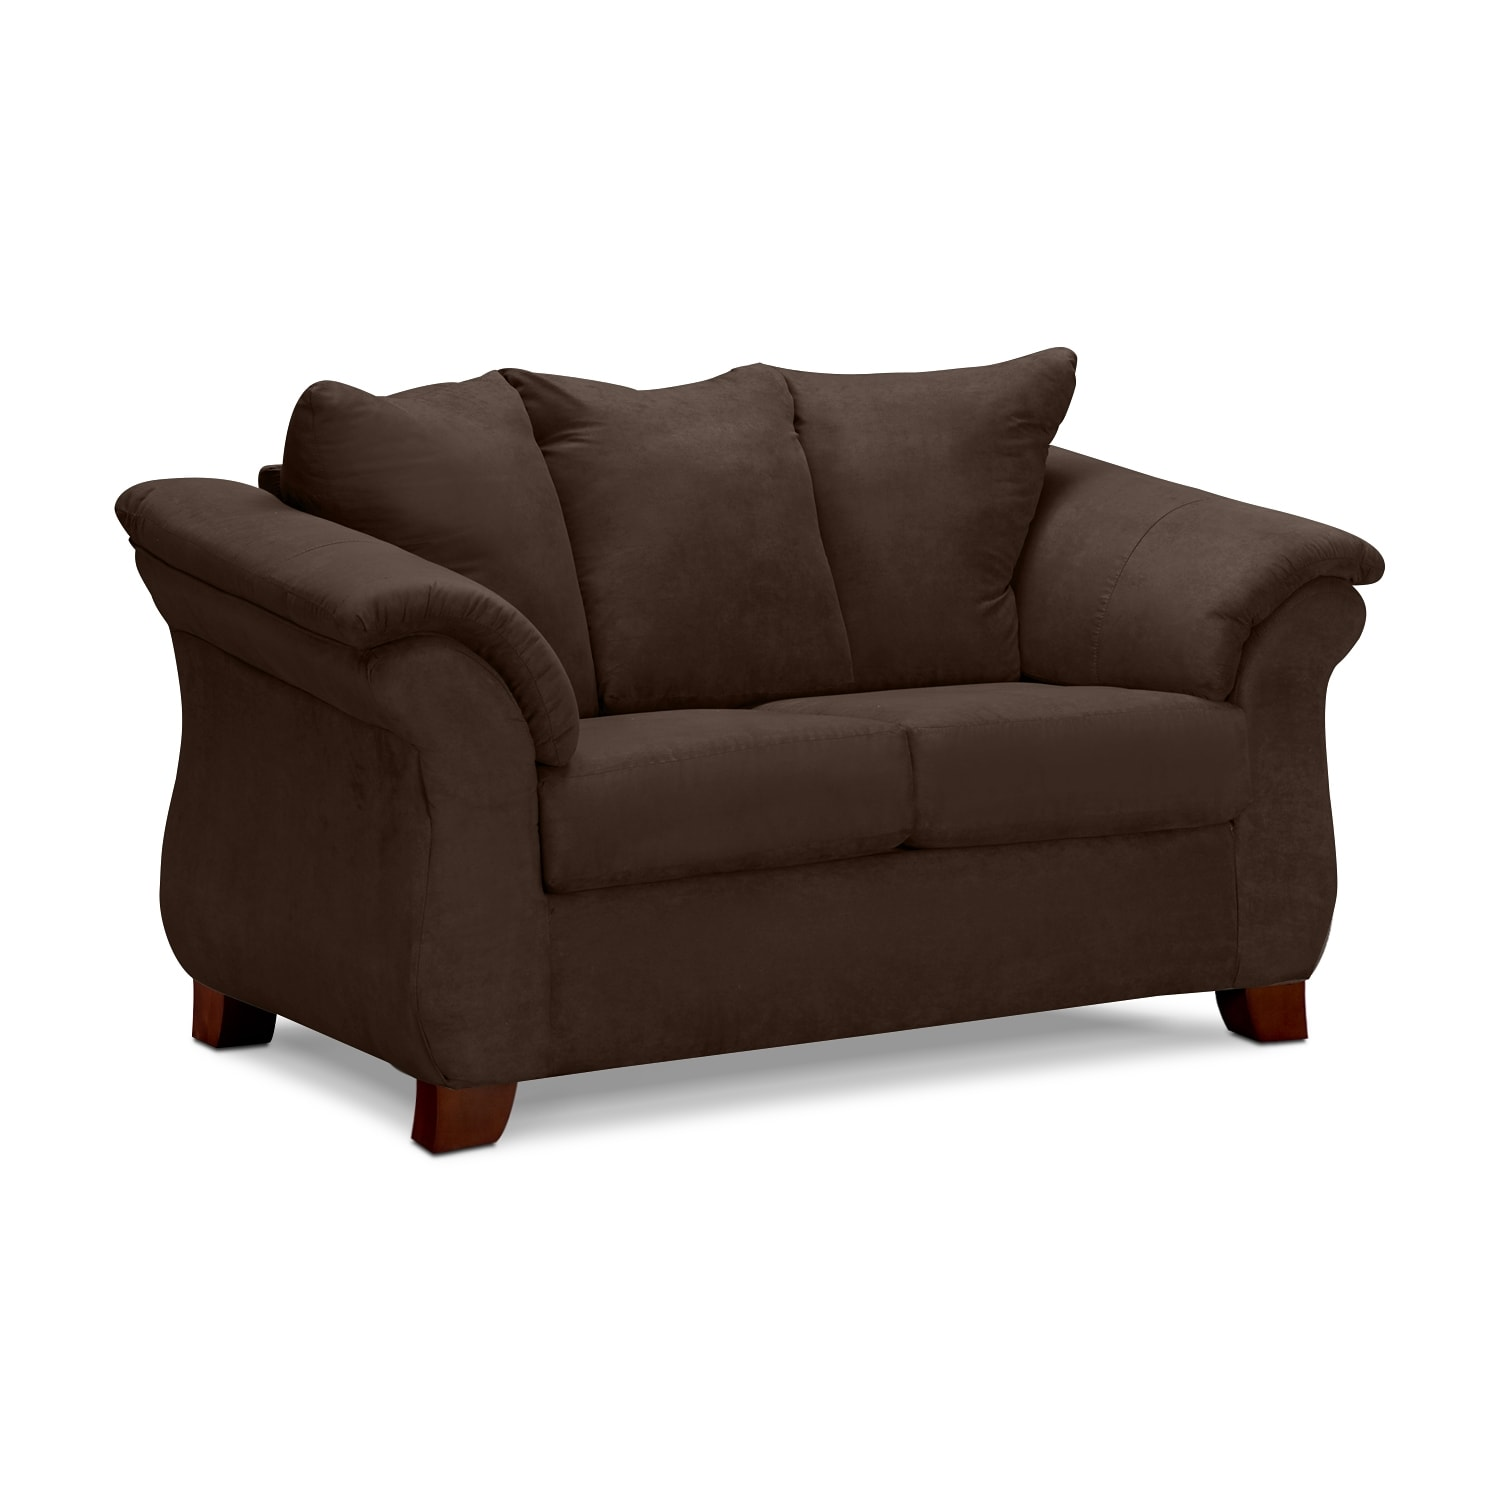 Adrian Loveseat - Chocolate